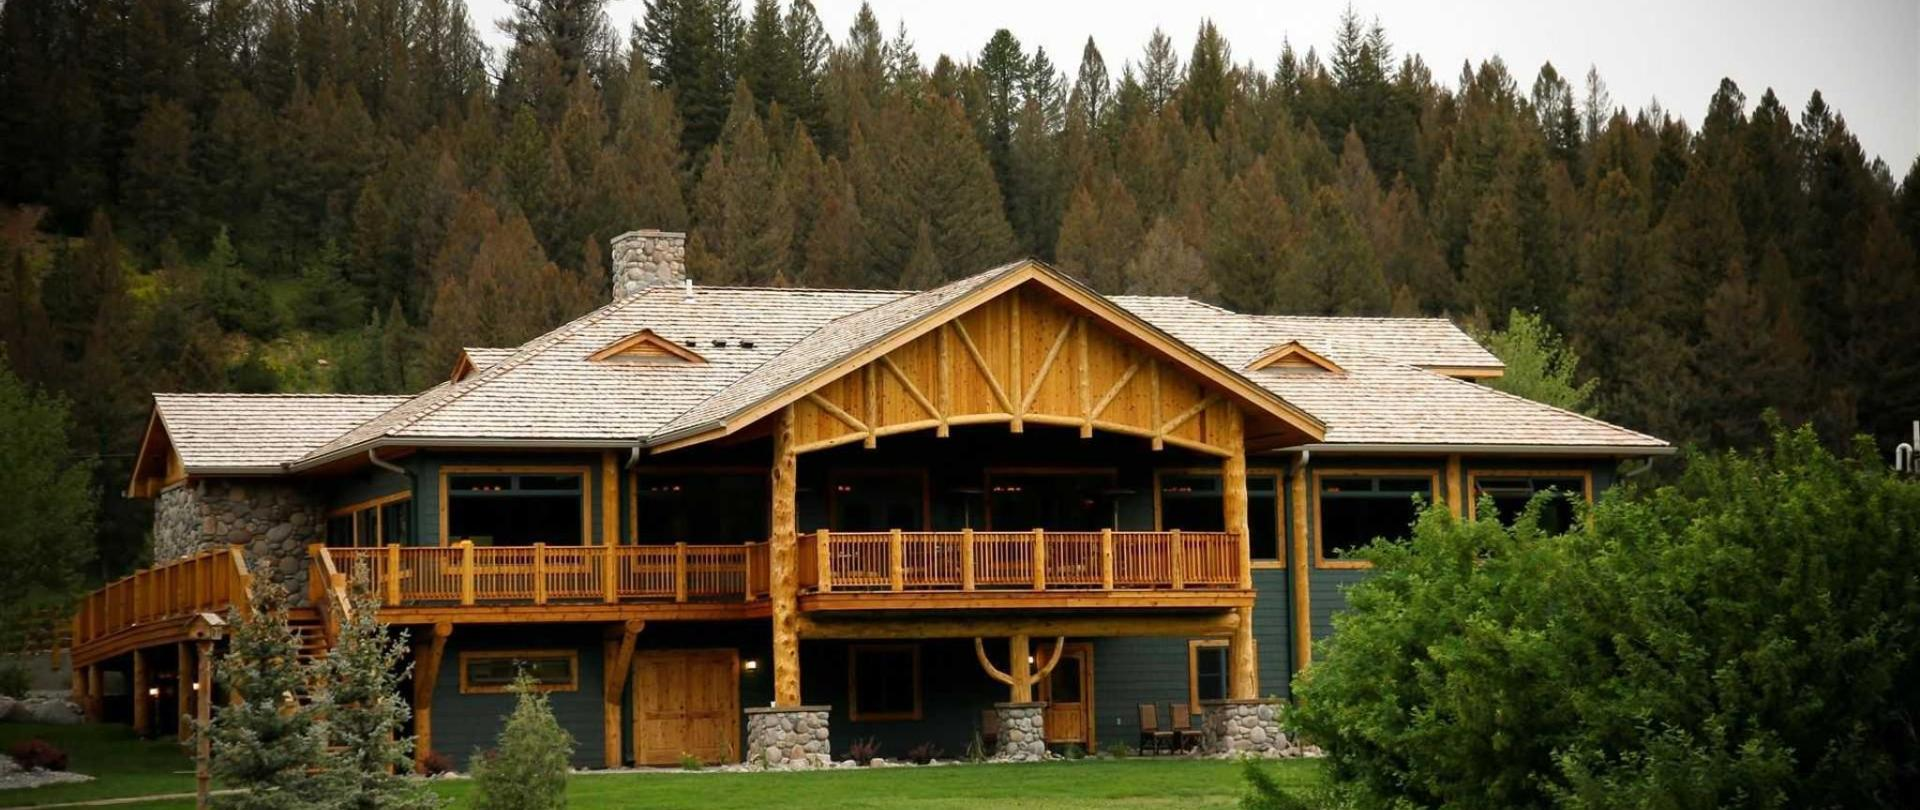 Rainbow Ranch Lodge - Big Sky Canyon Village, MT - USA